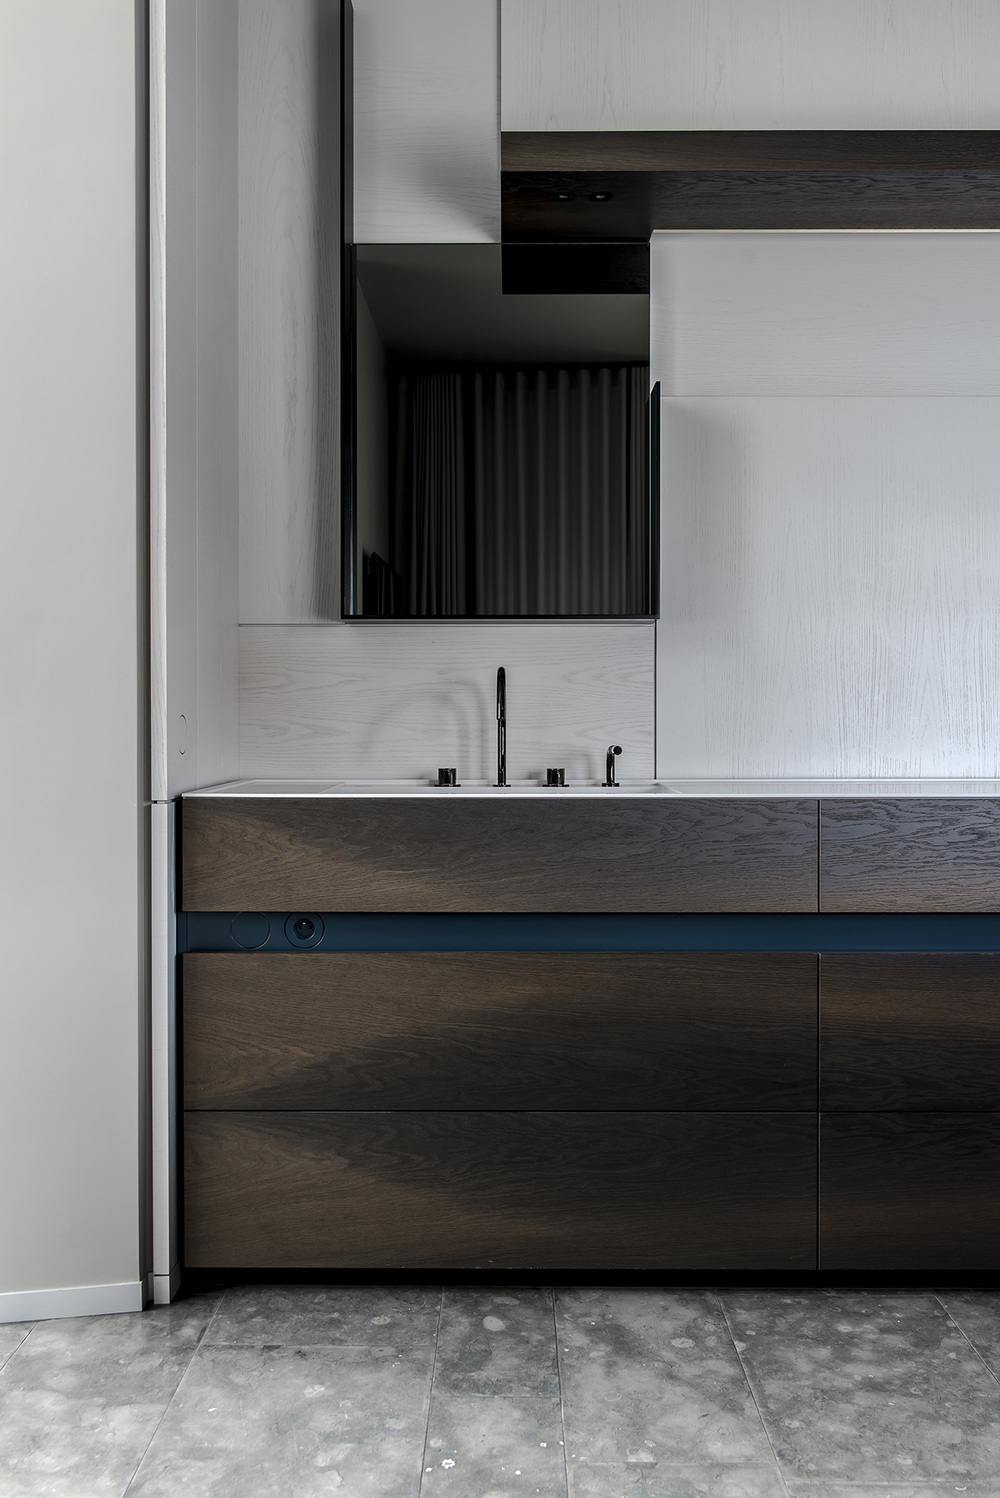 Concept kitchen Interieur Maddens designed by Frederic Kielemoes